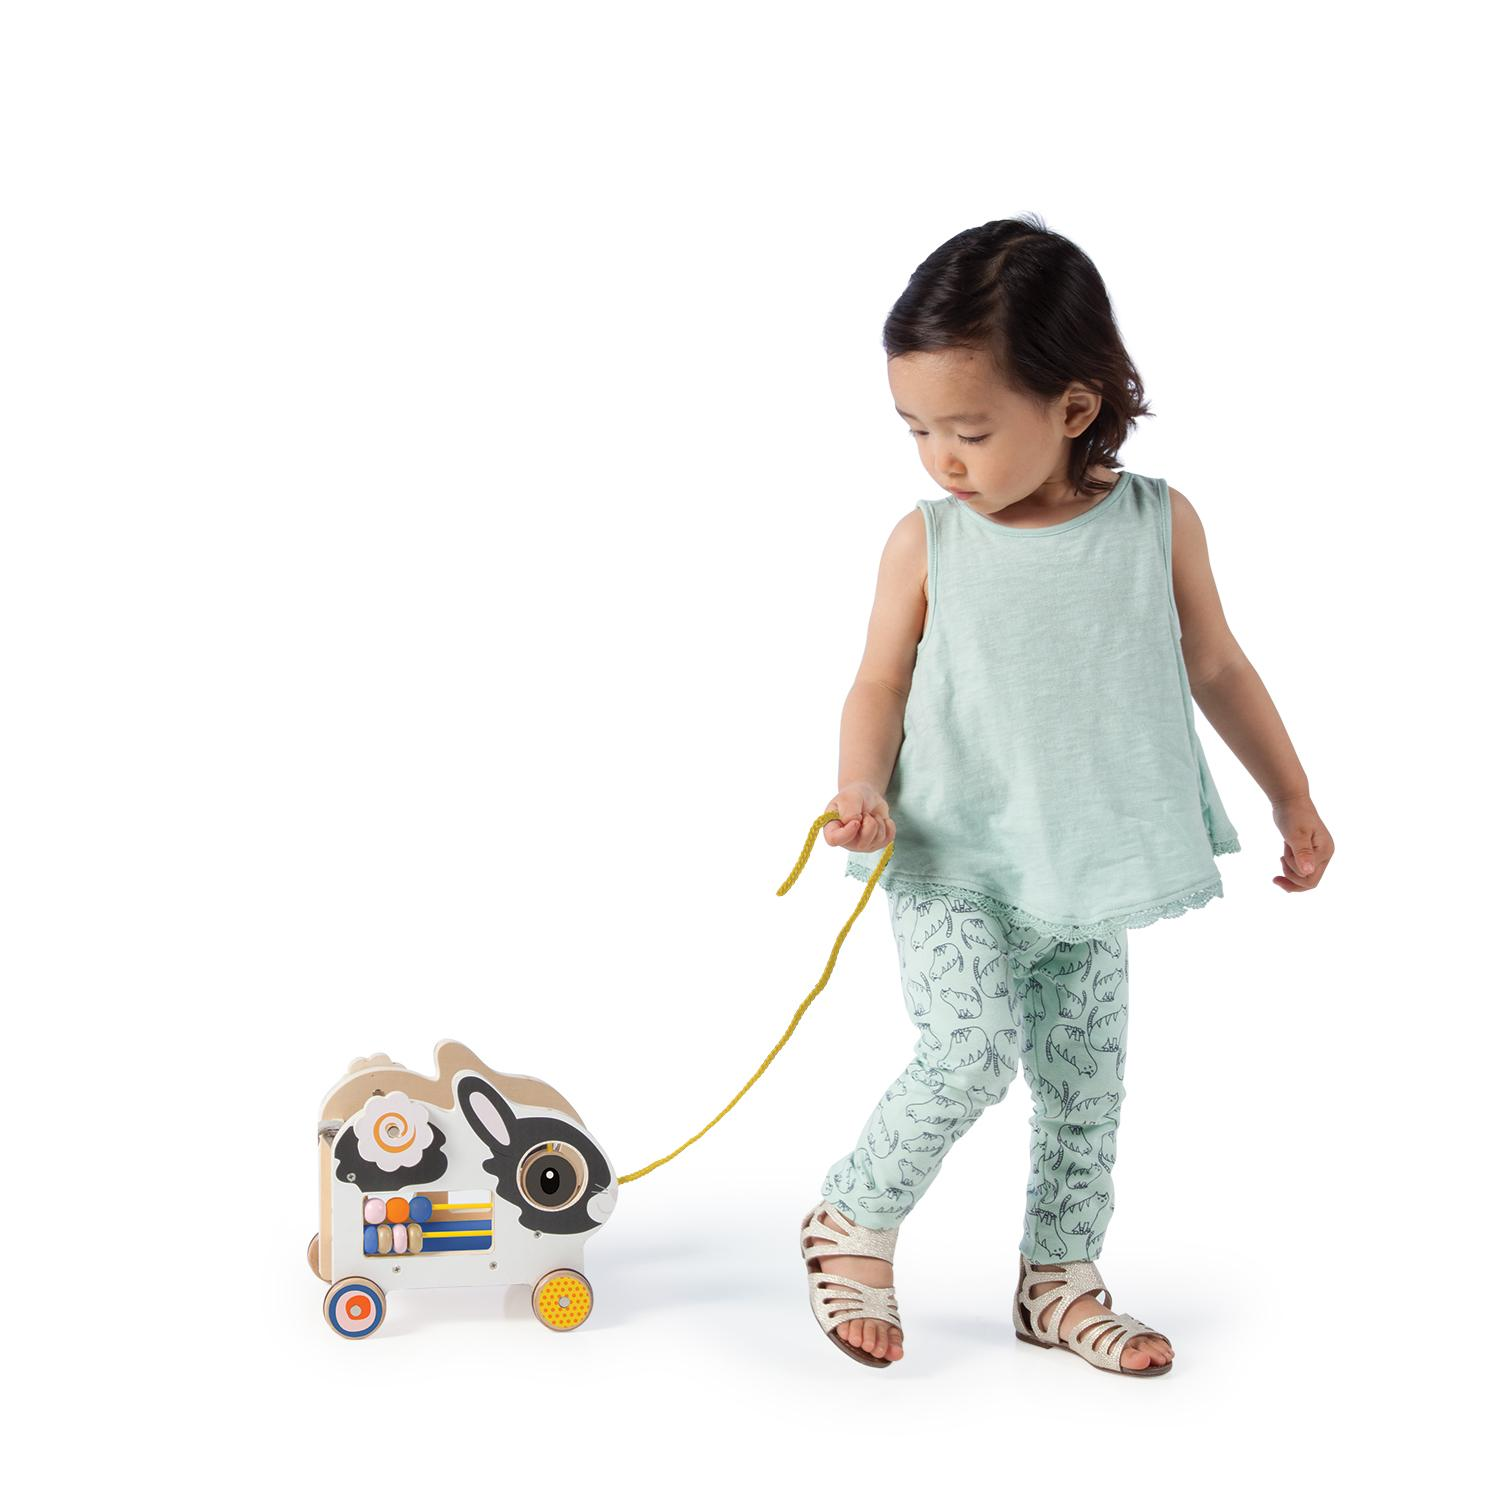 Pull Toys For Girls : Amazon manhattan toy my pal truman wooden pull along